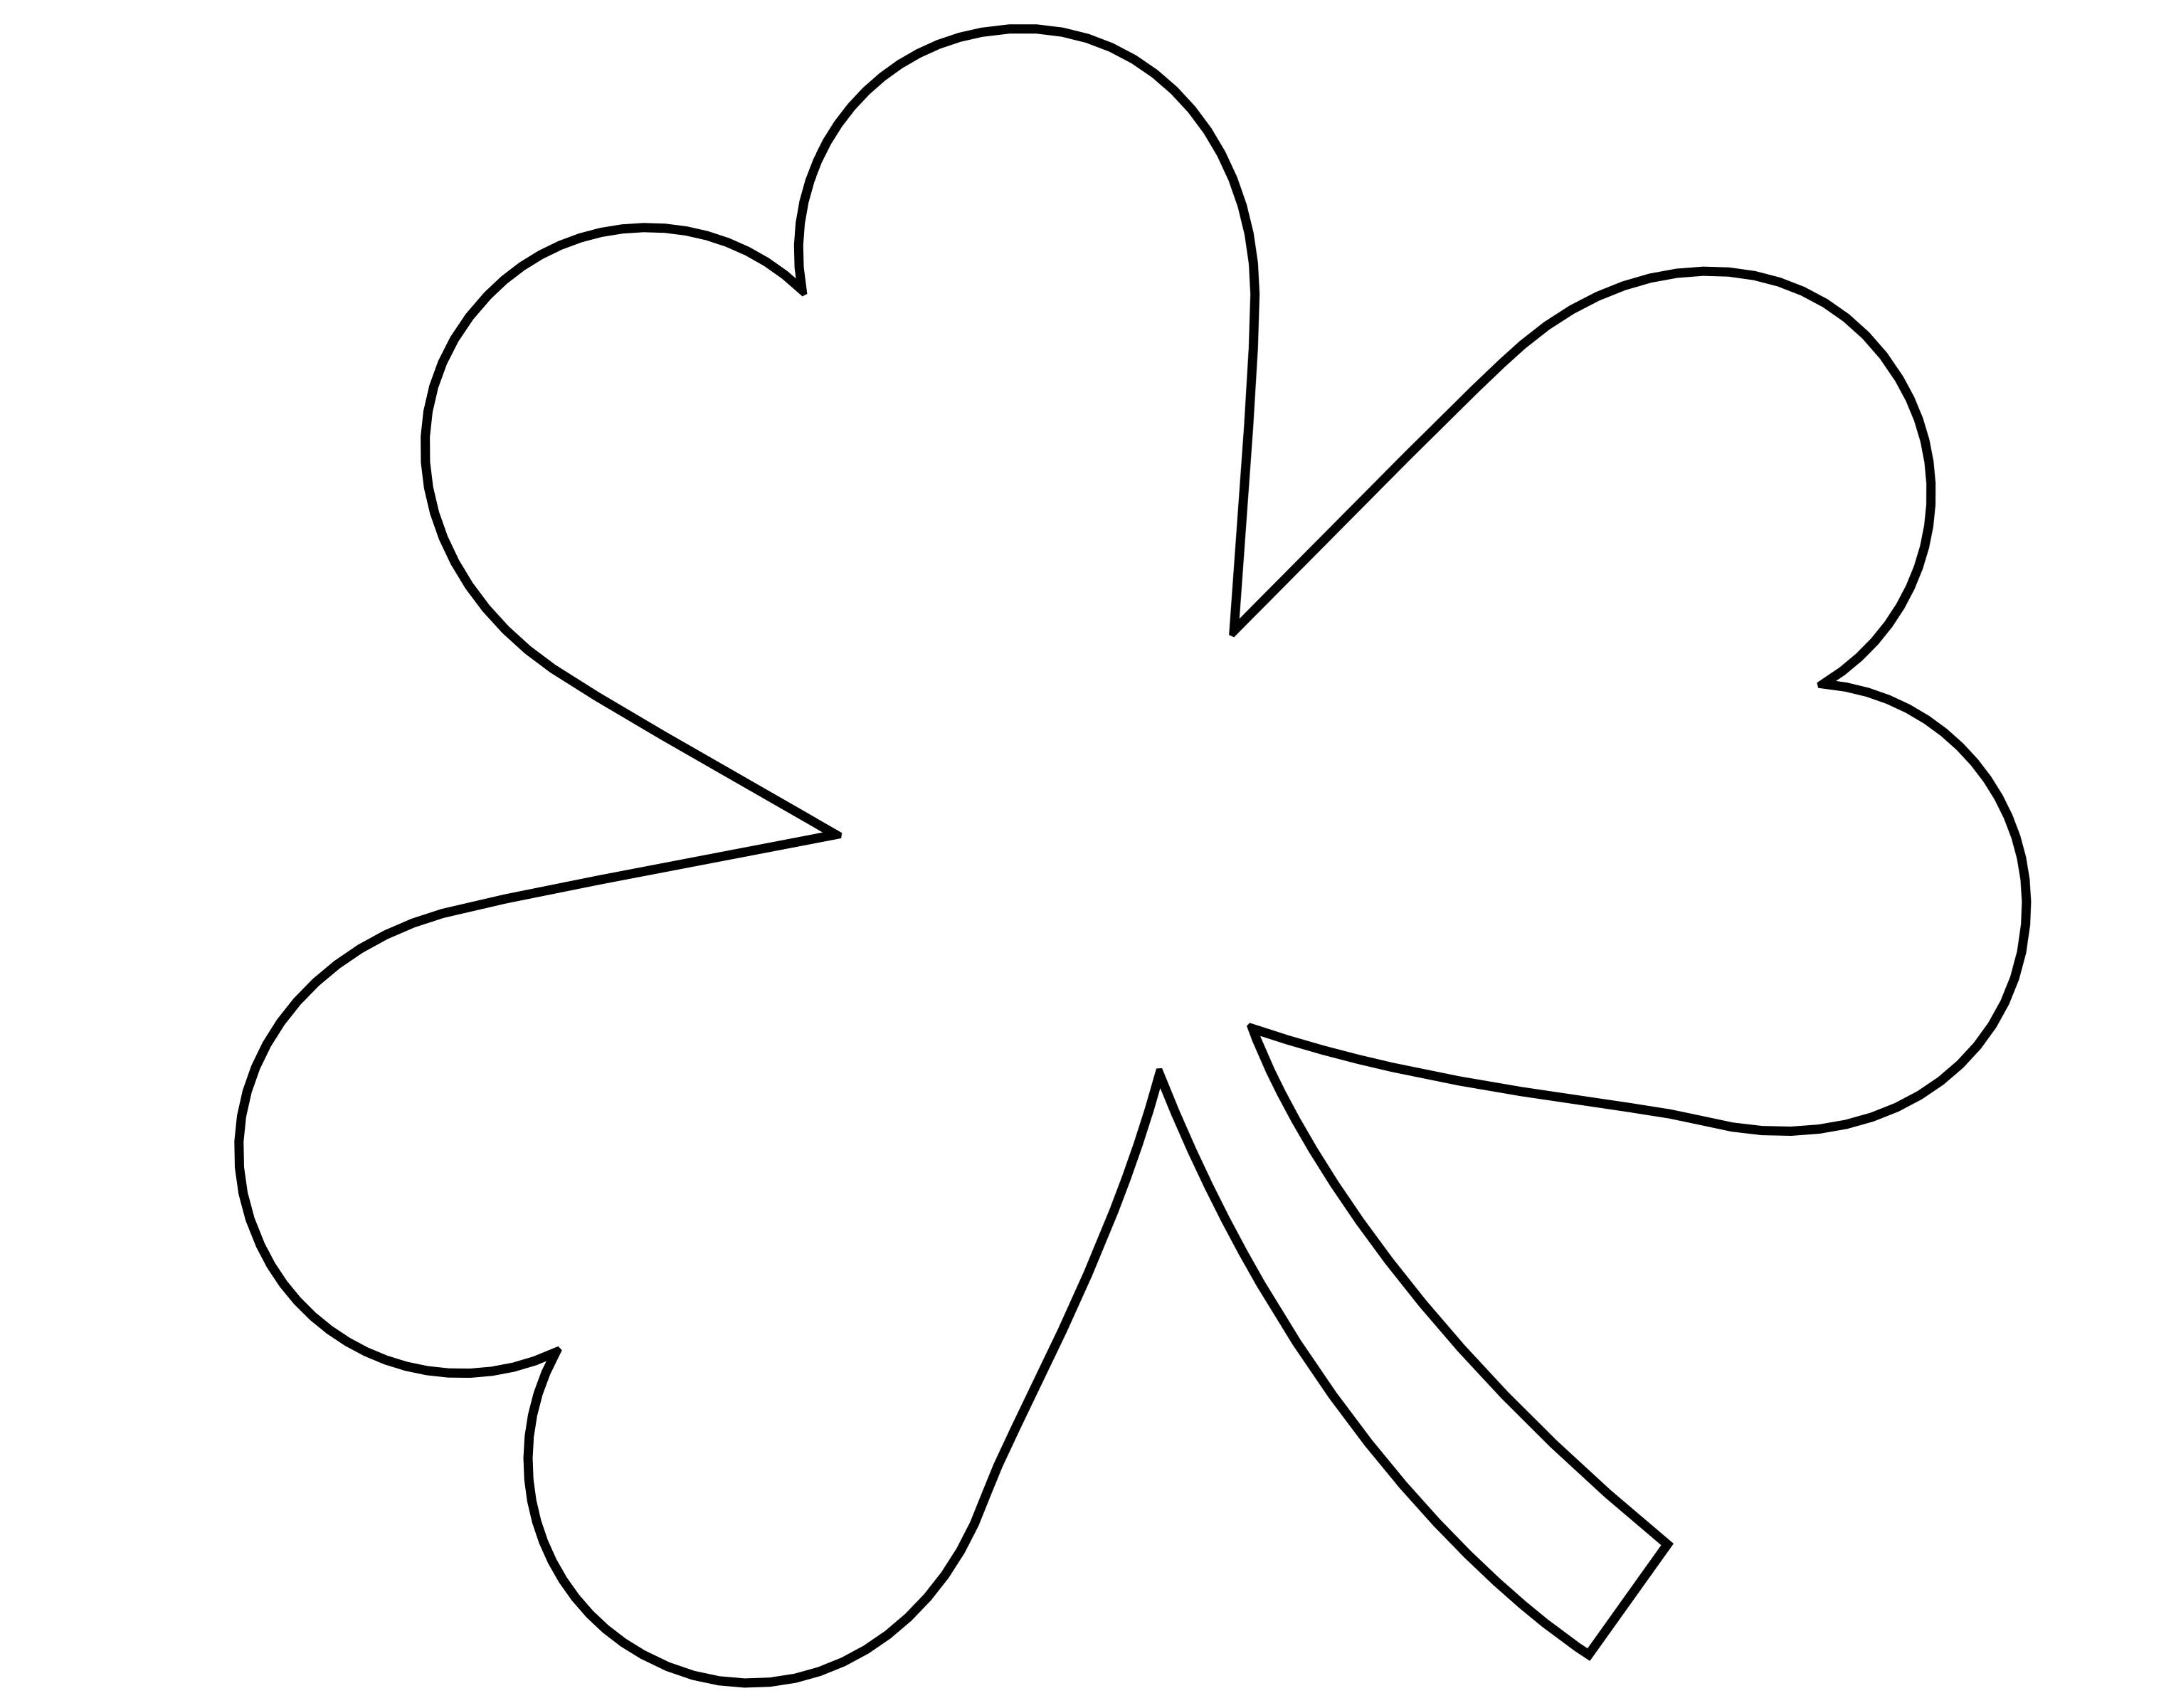 Nerdy image intended for shamrock template printable